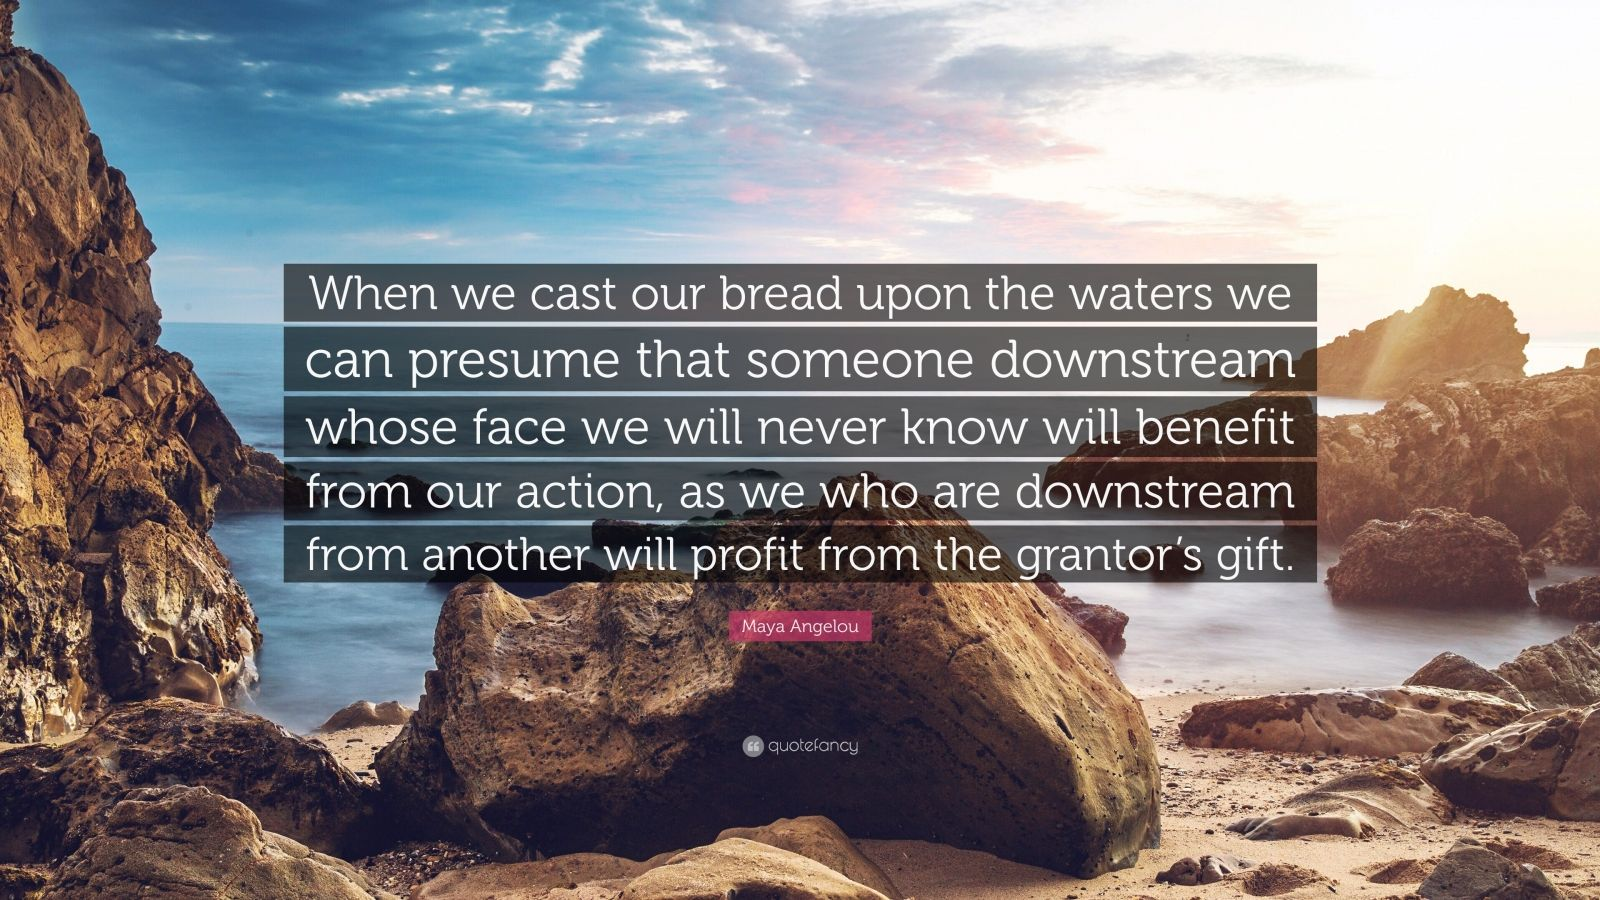 """Maya Angelou Quote: """"When we cast our bread upon the waters we can presume that someone downstream whose face we will never know will benefit from our action, as we who are downstream from another will profit from the grantor's gift."""""""